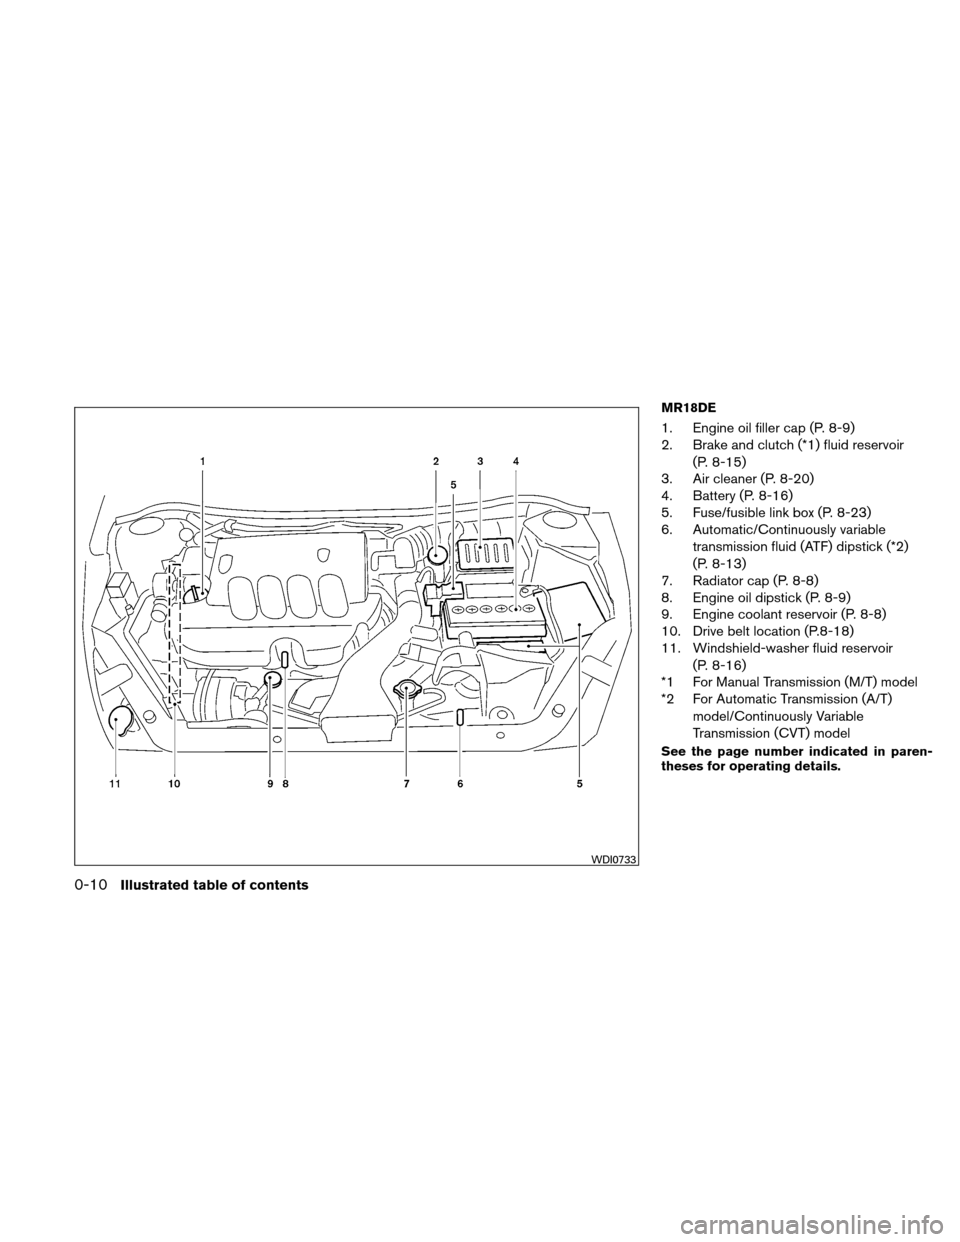 NISSAN VERSA HATCHBACK 2010 1.G Owners Manual, Page 17